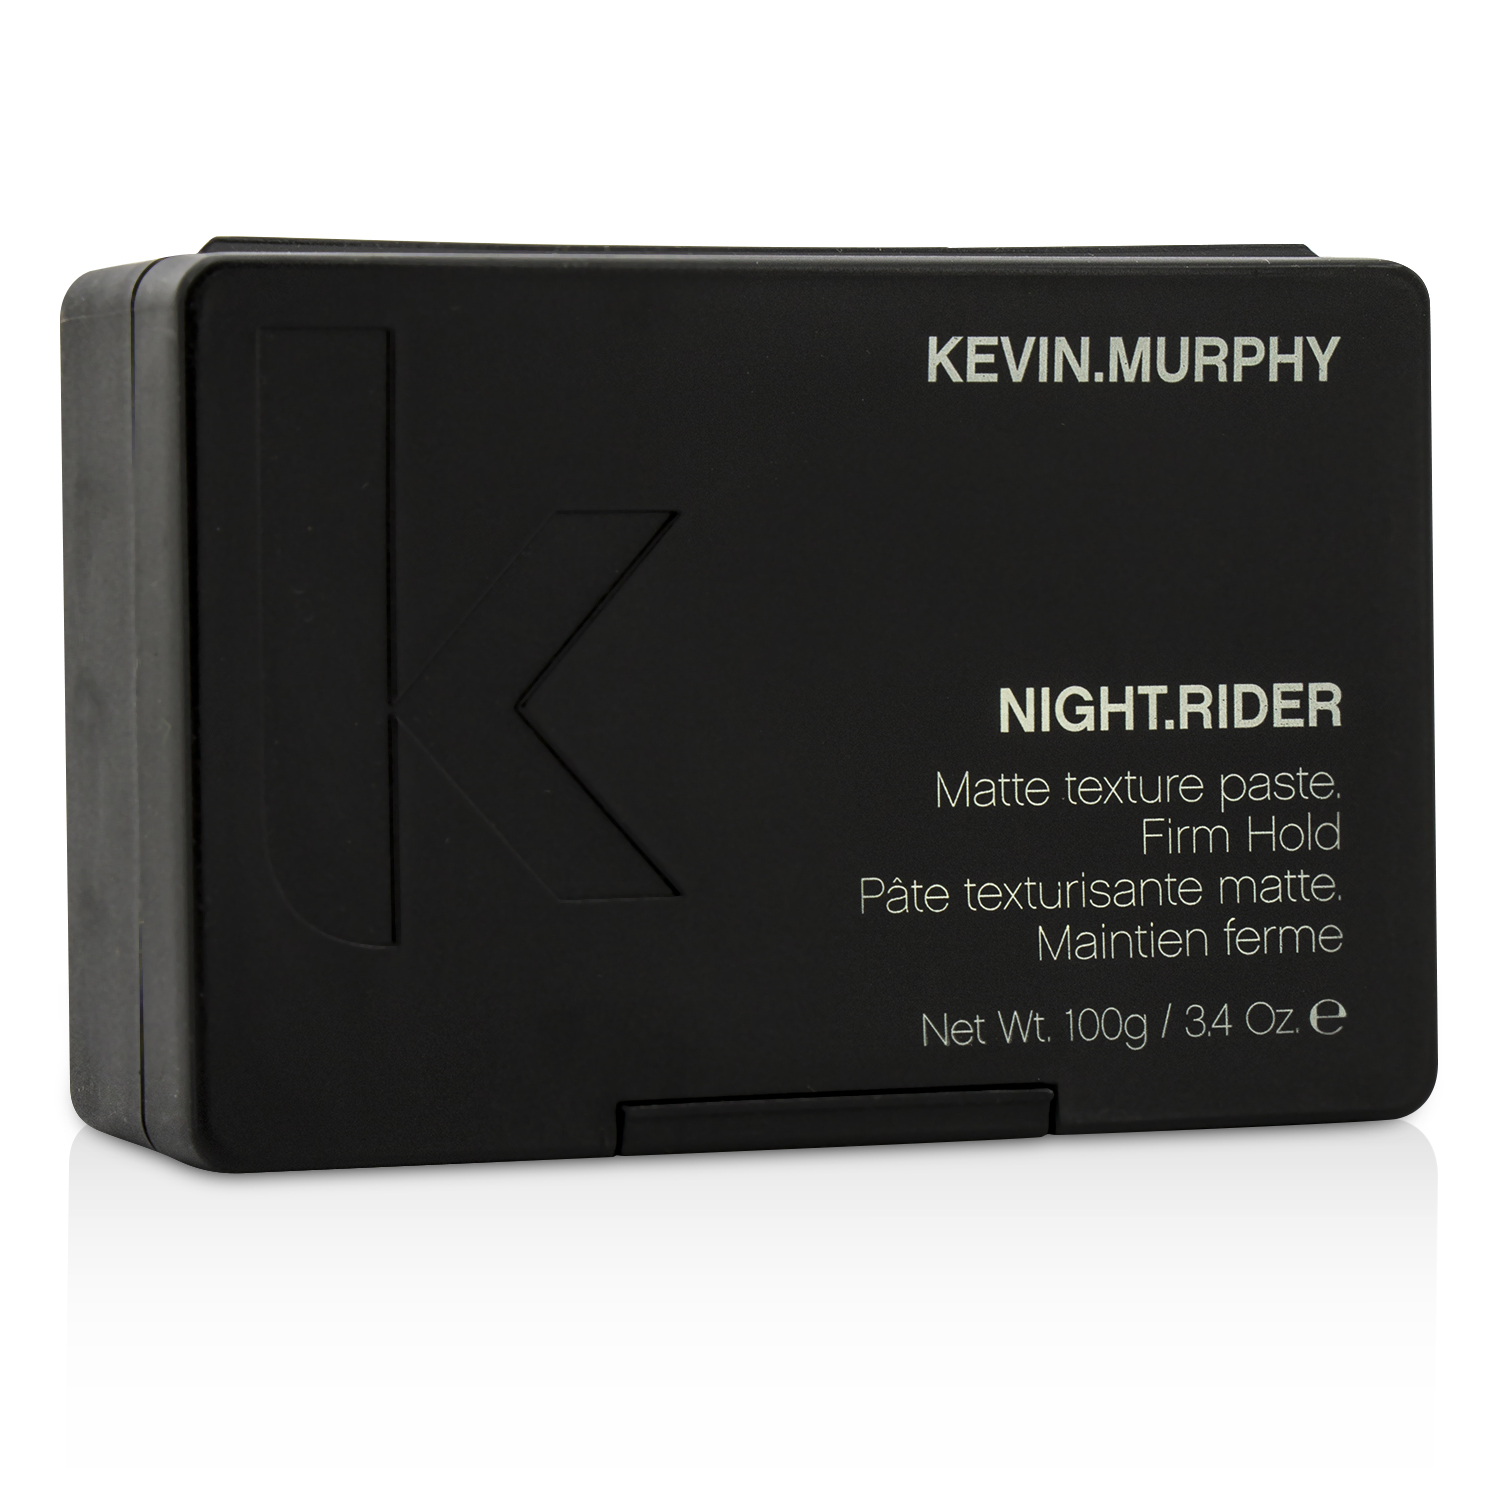 Night.Rider Matte Texture Paste (Firm Hold) Kevin.Murphy Image